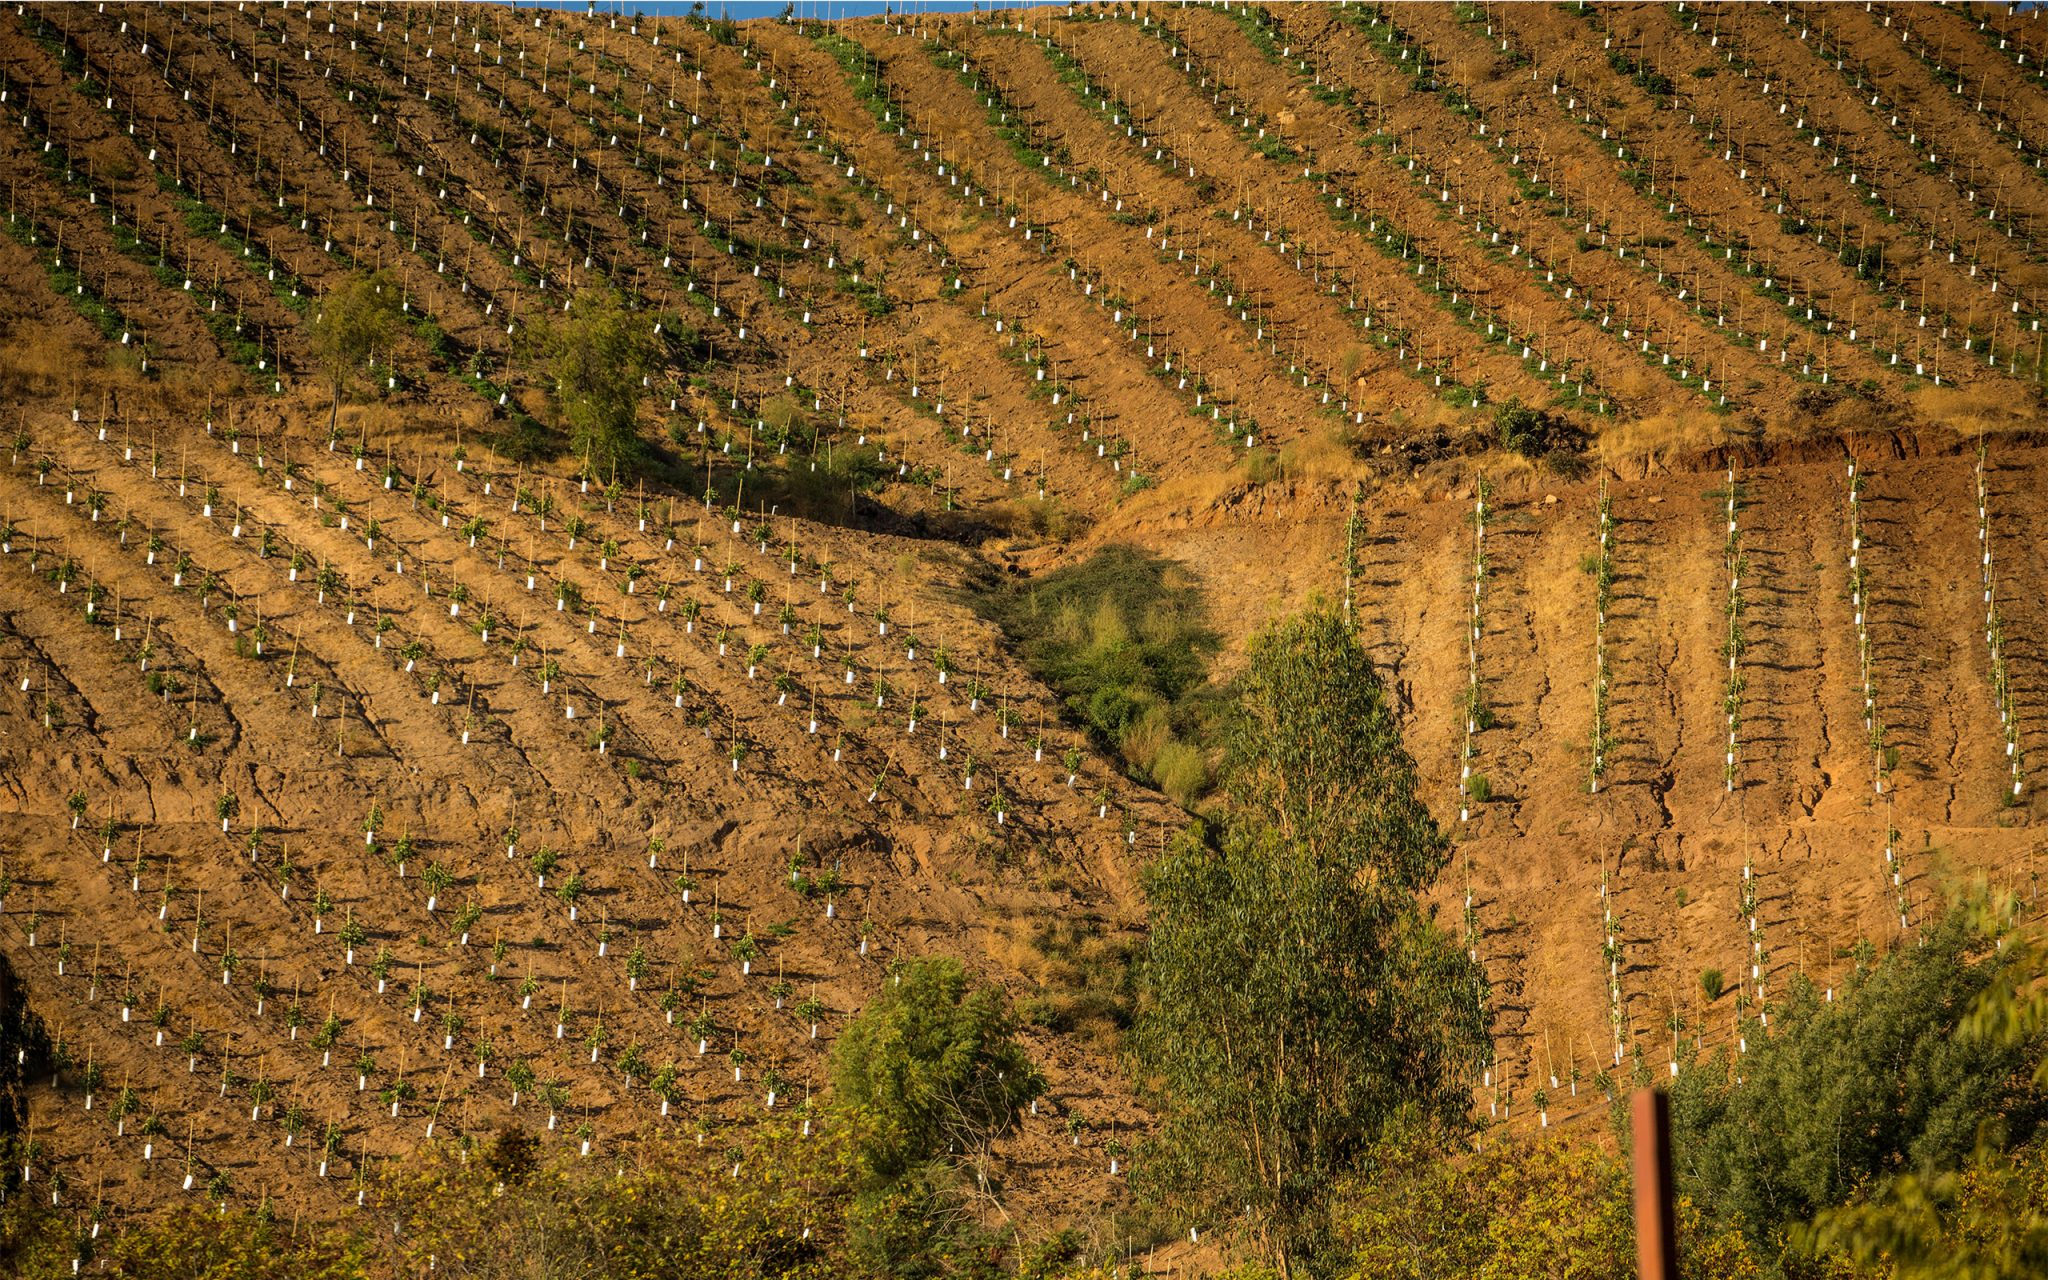 Soil erosion between the vines on the vineyards in Rancagua Basin, Chile. Carey Marks Photography